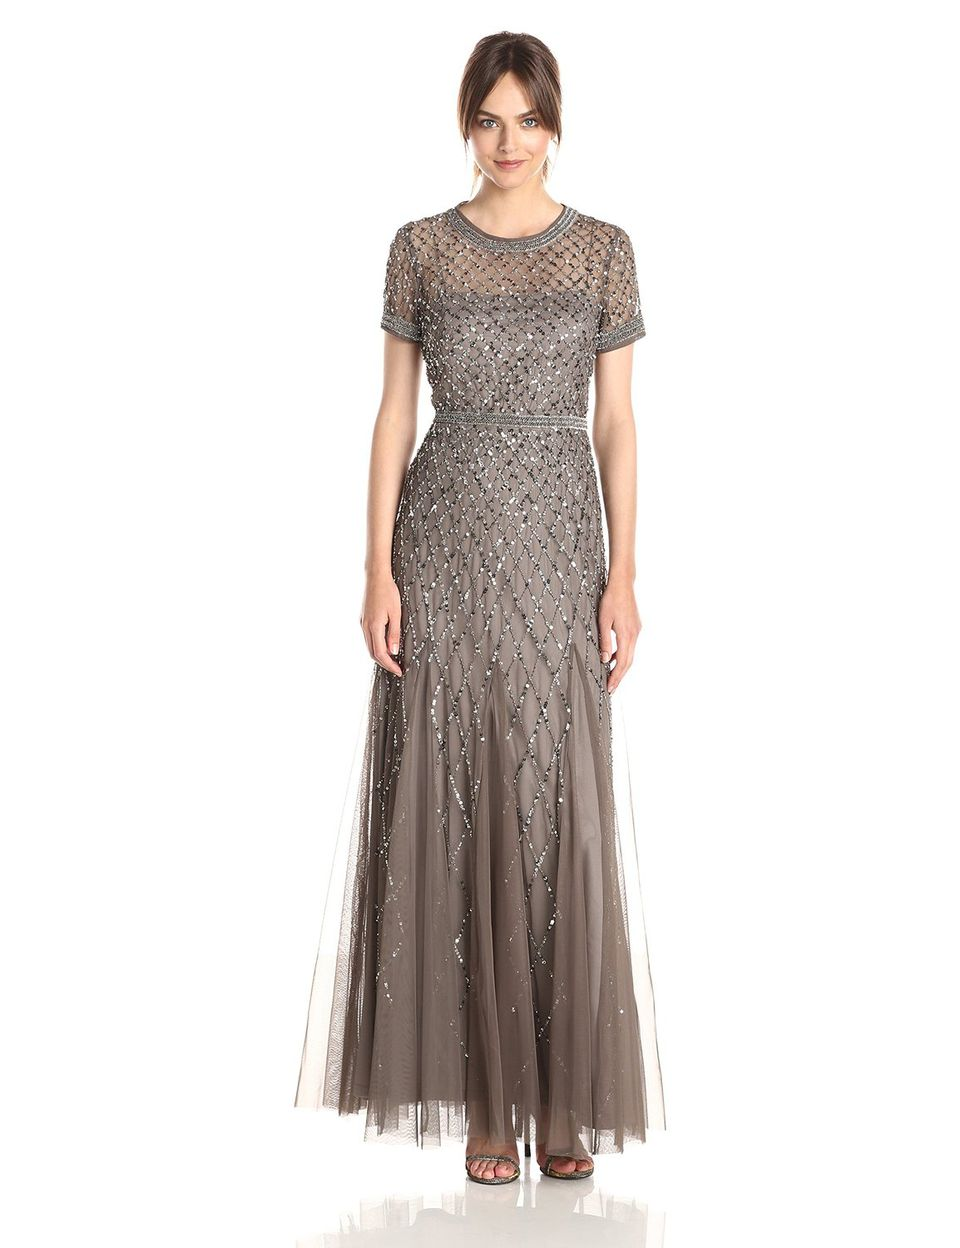 Adrianna papell short sleeve beaded mesh gown outdoor for Dresses for mother of the bride outdoor wedding